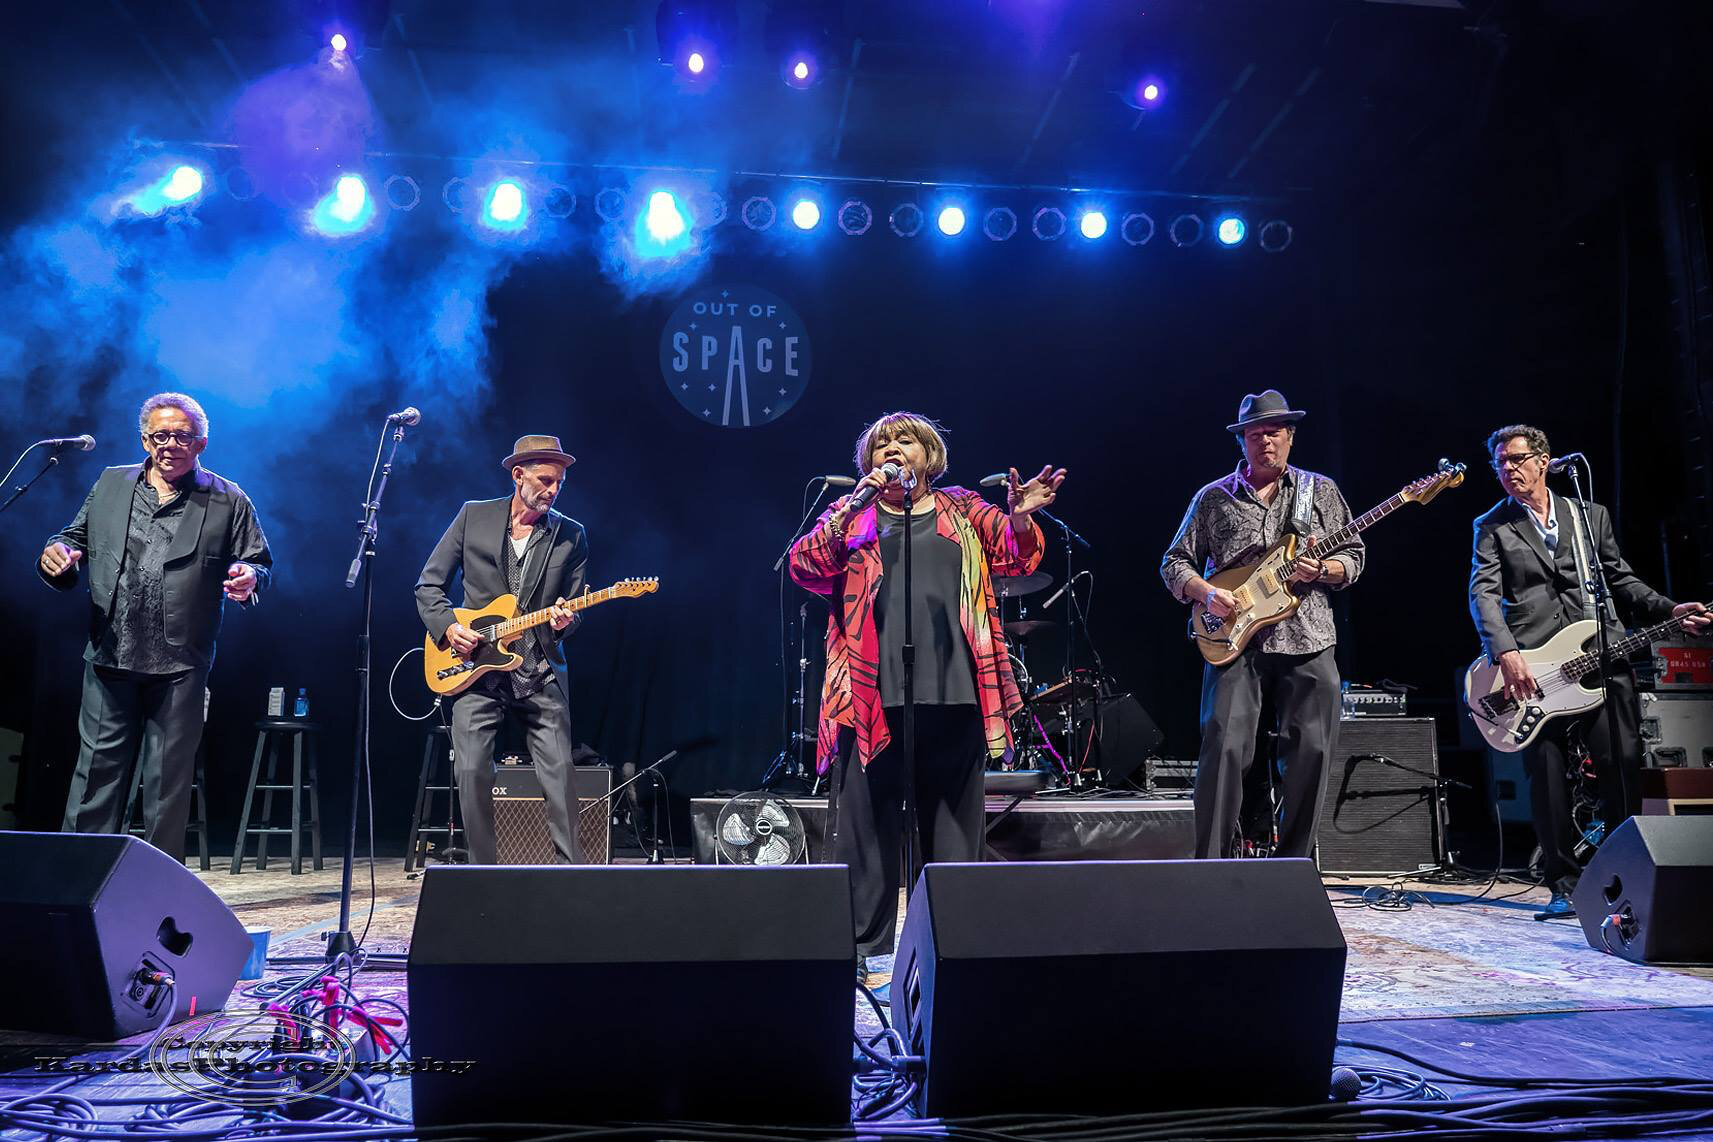 Dave, Mavis Staples and band. Evanston Out of SPACE